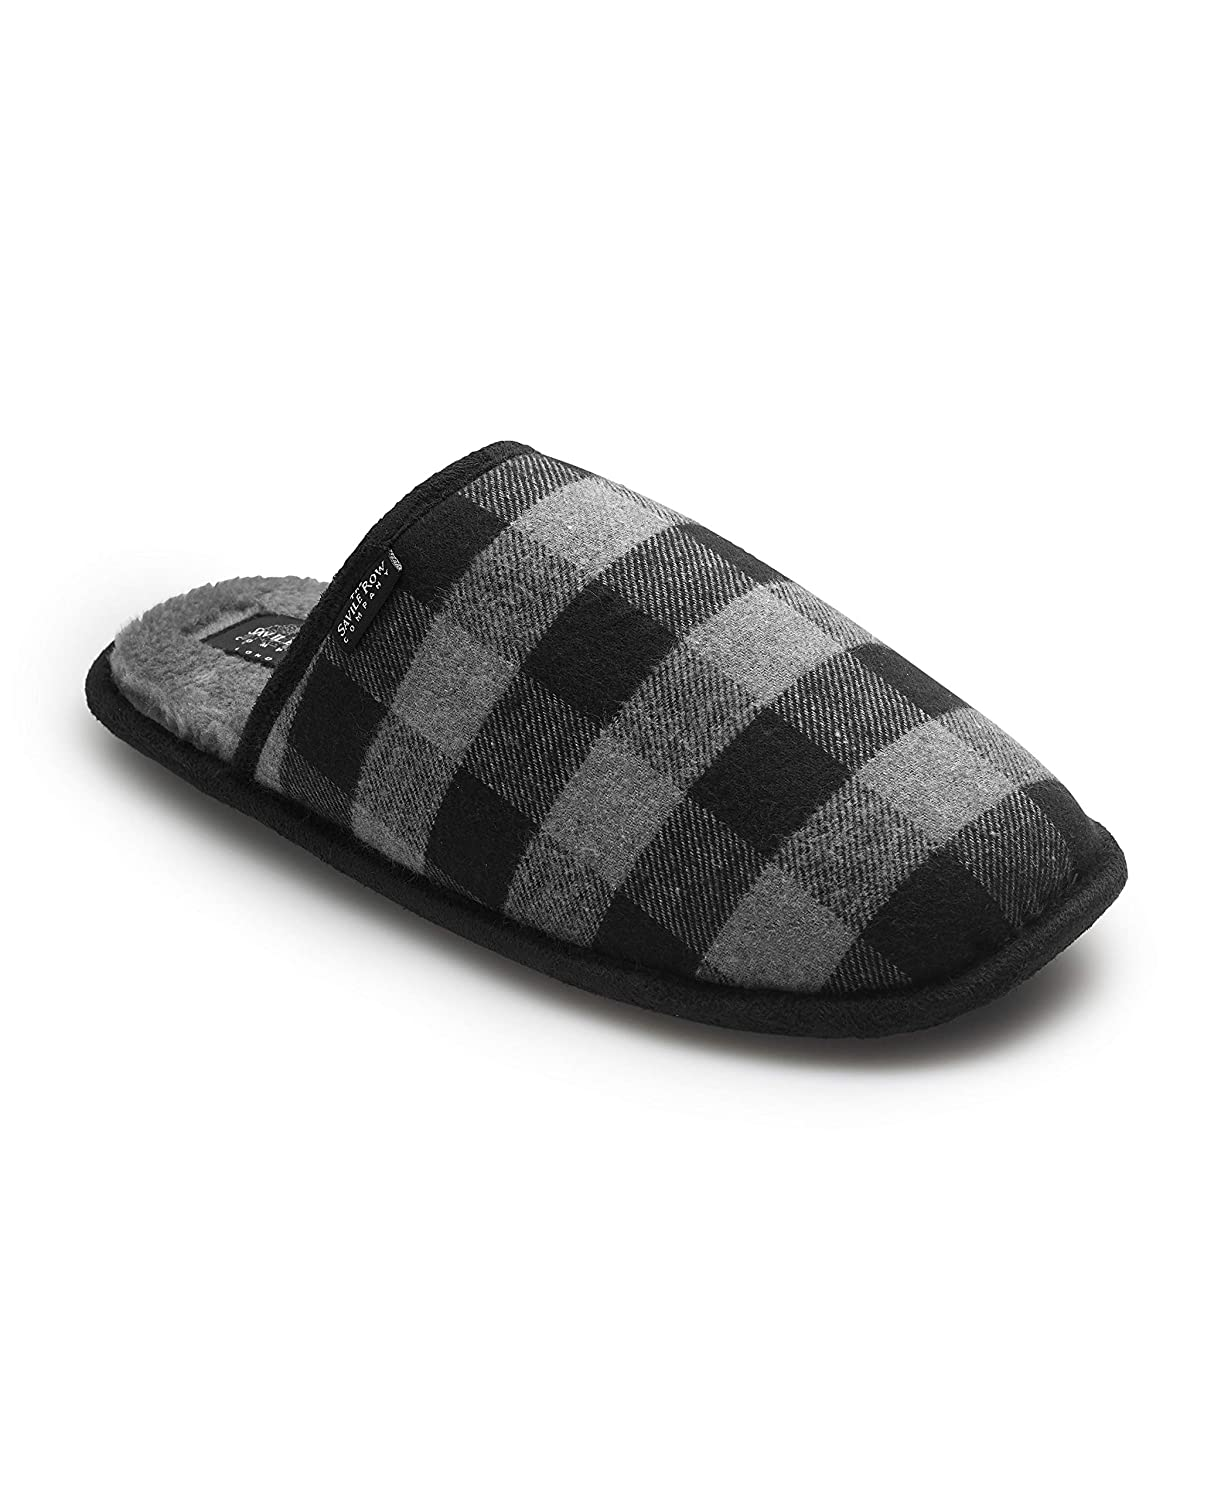 Savile Row Men's Black Check Mule Slippers